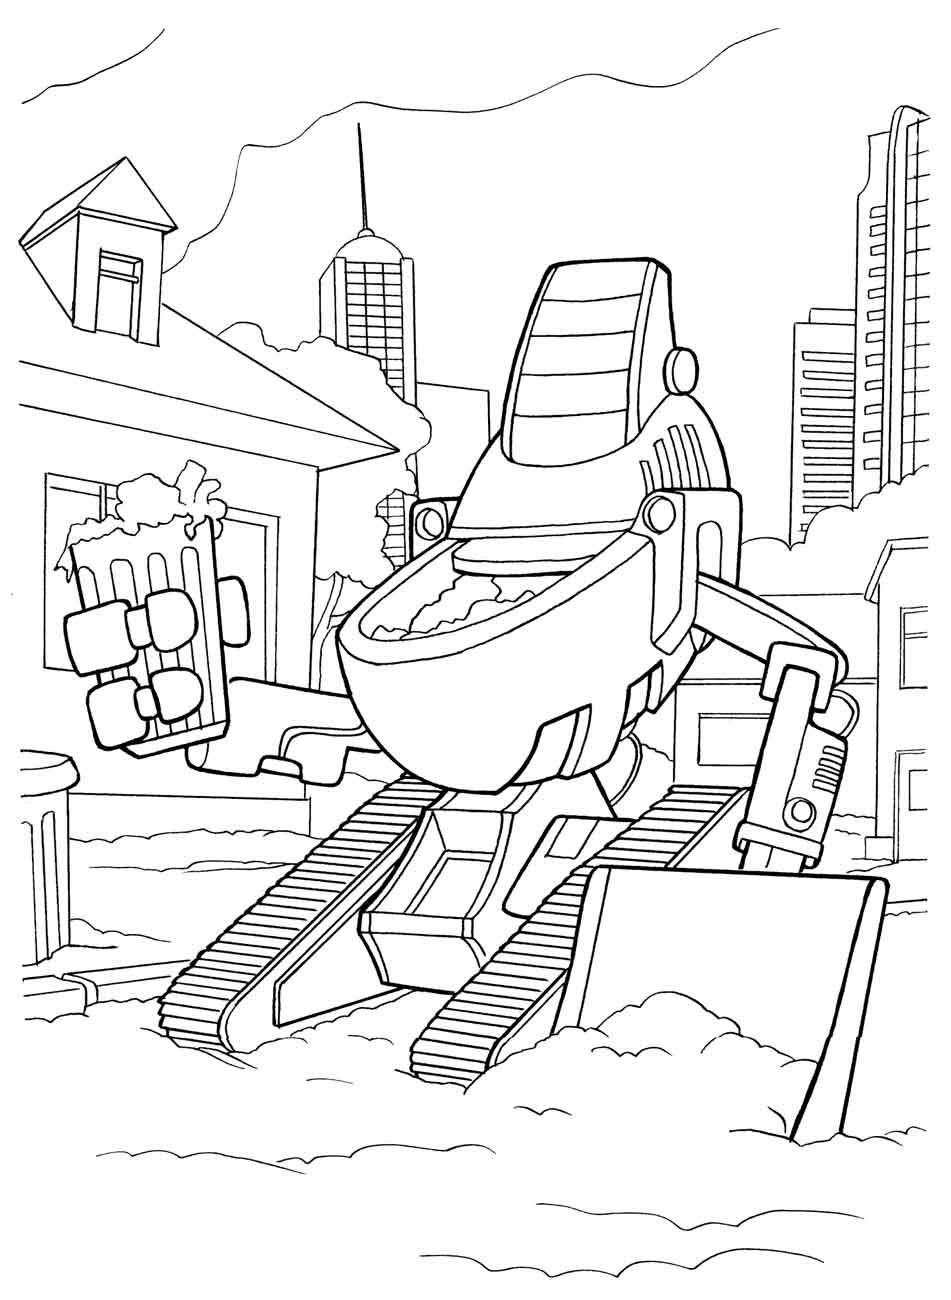 preschool robot coloring pages - photo#28